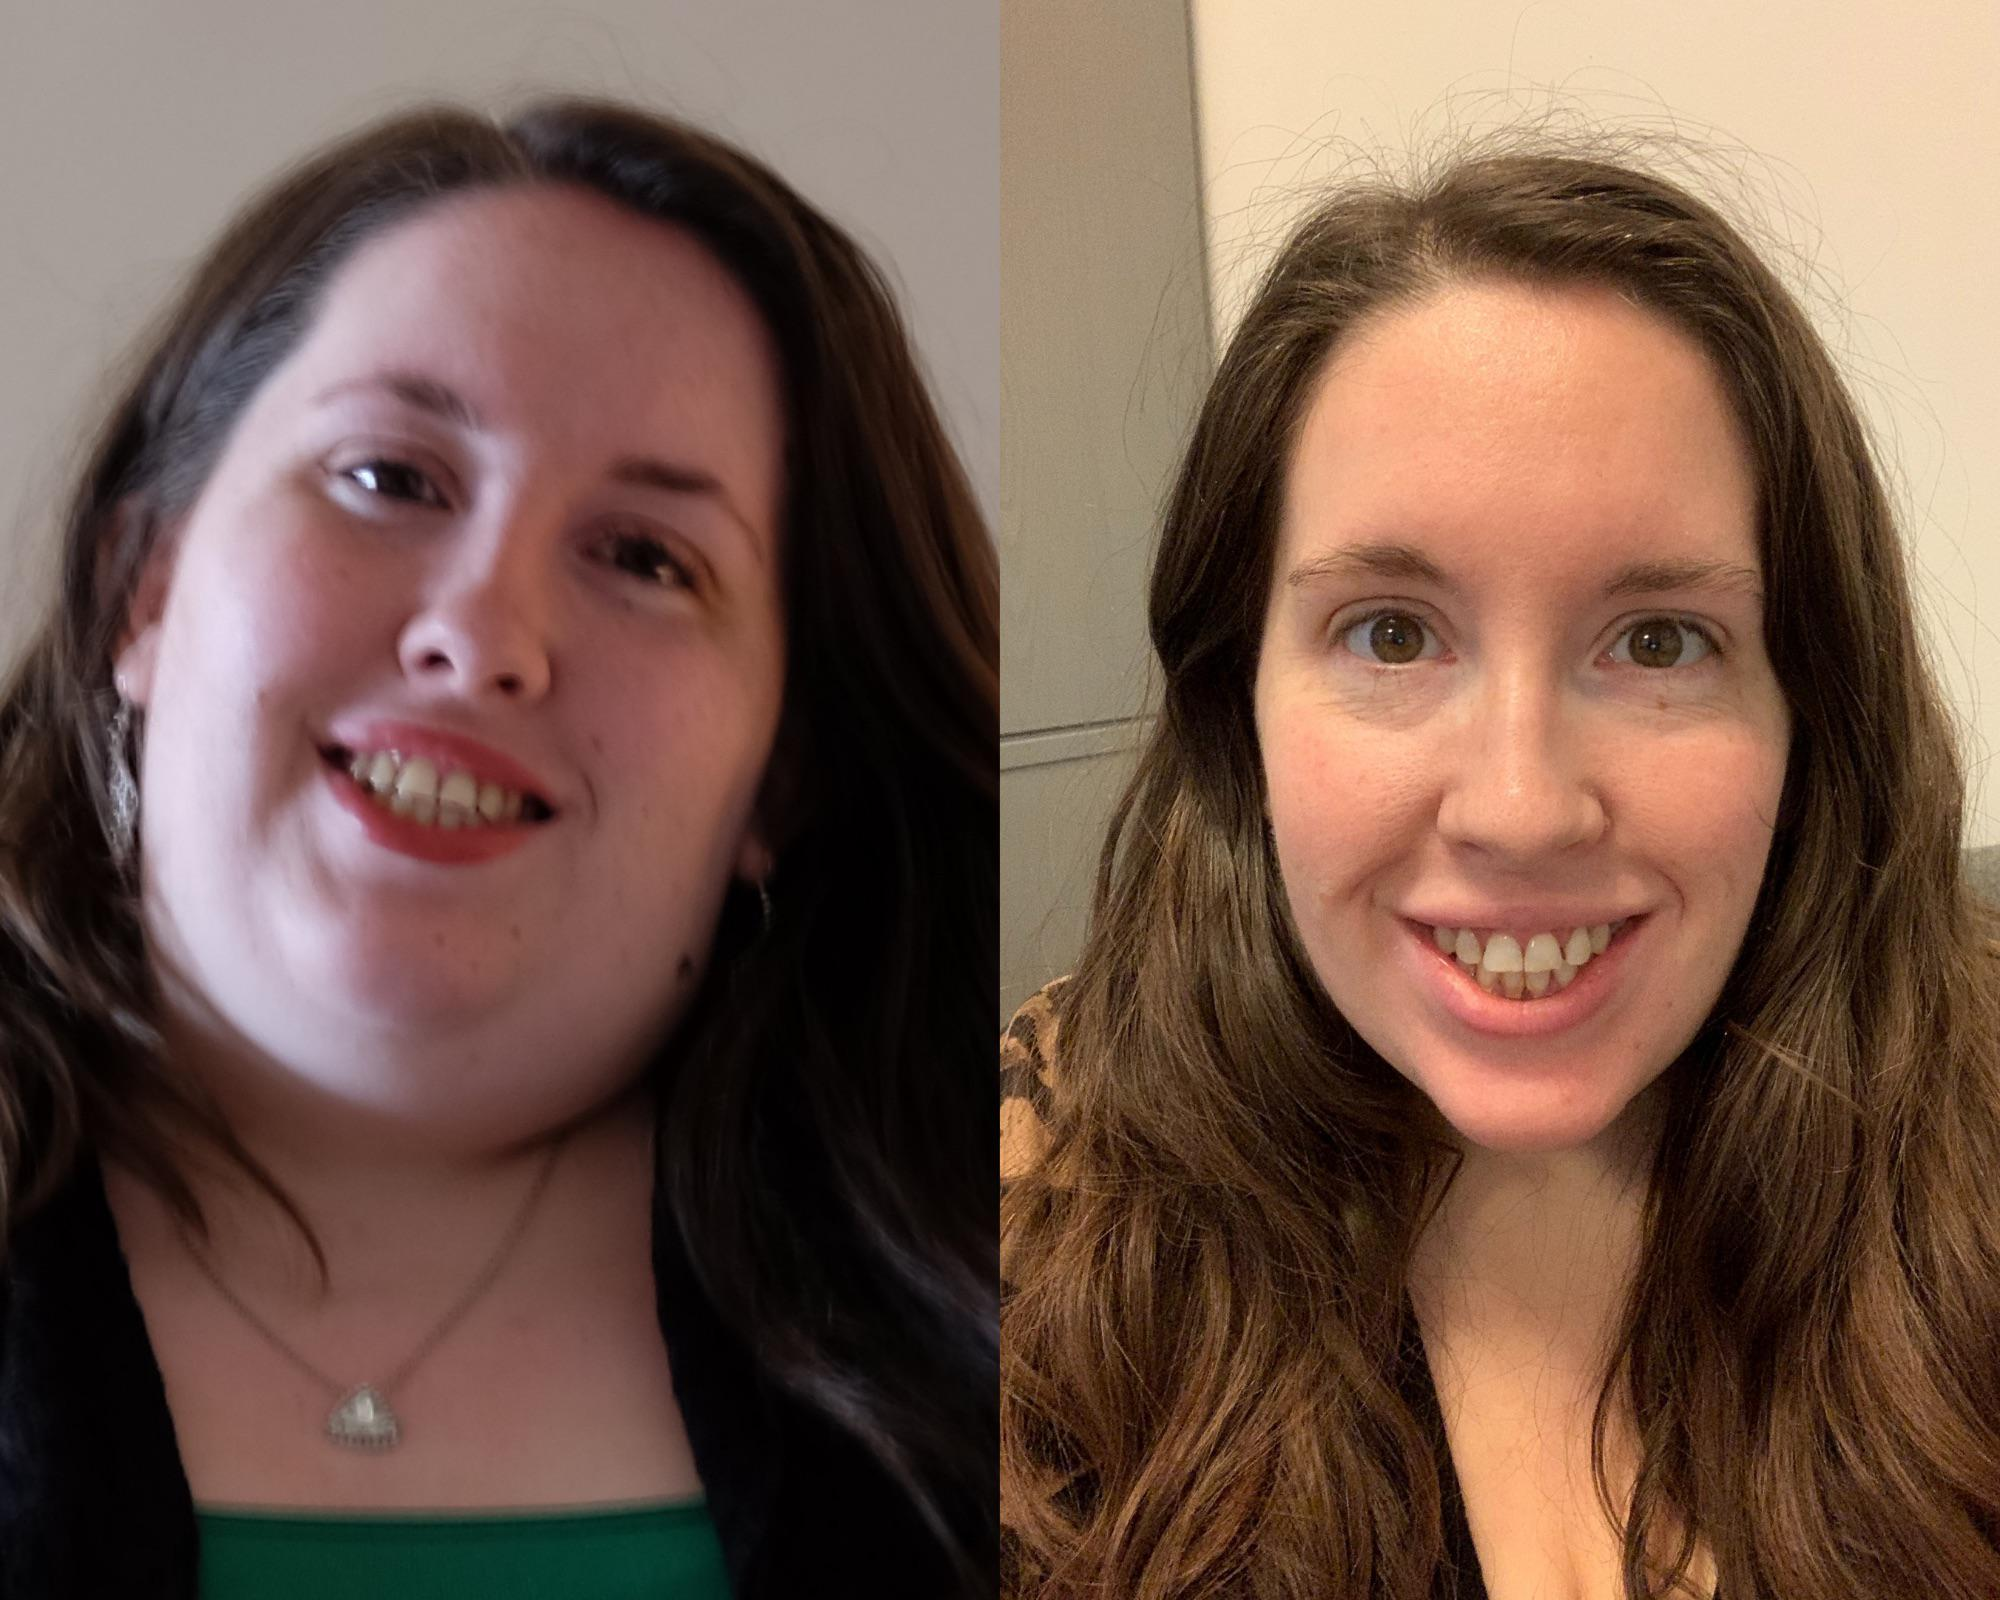 5 foot Female 90 lbs Weight Loss 243 lbs to 153 lbs